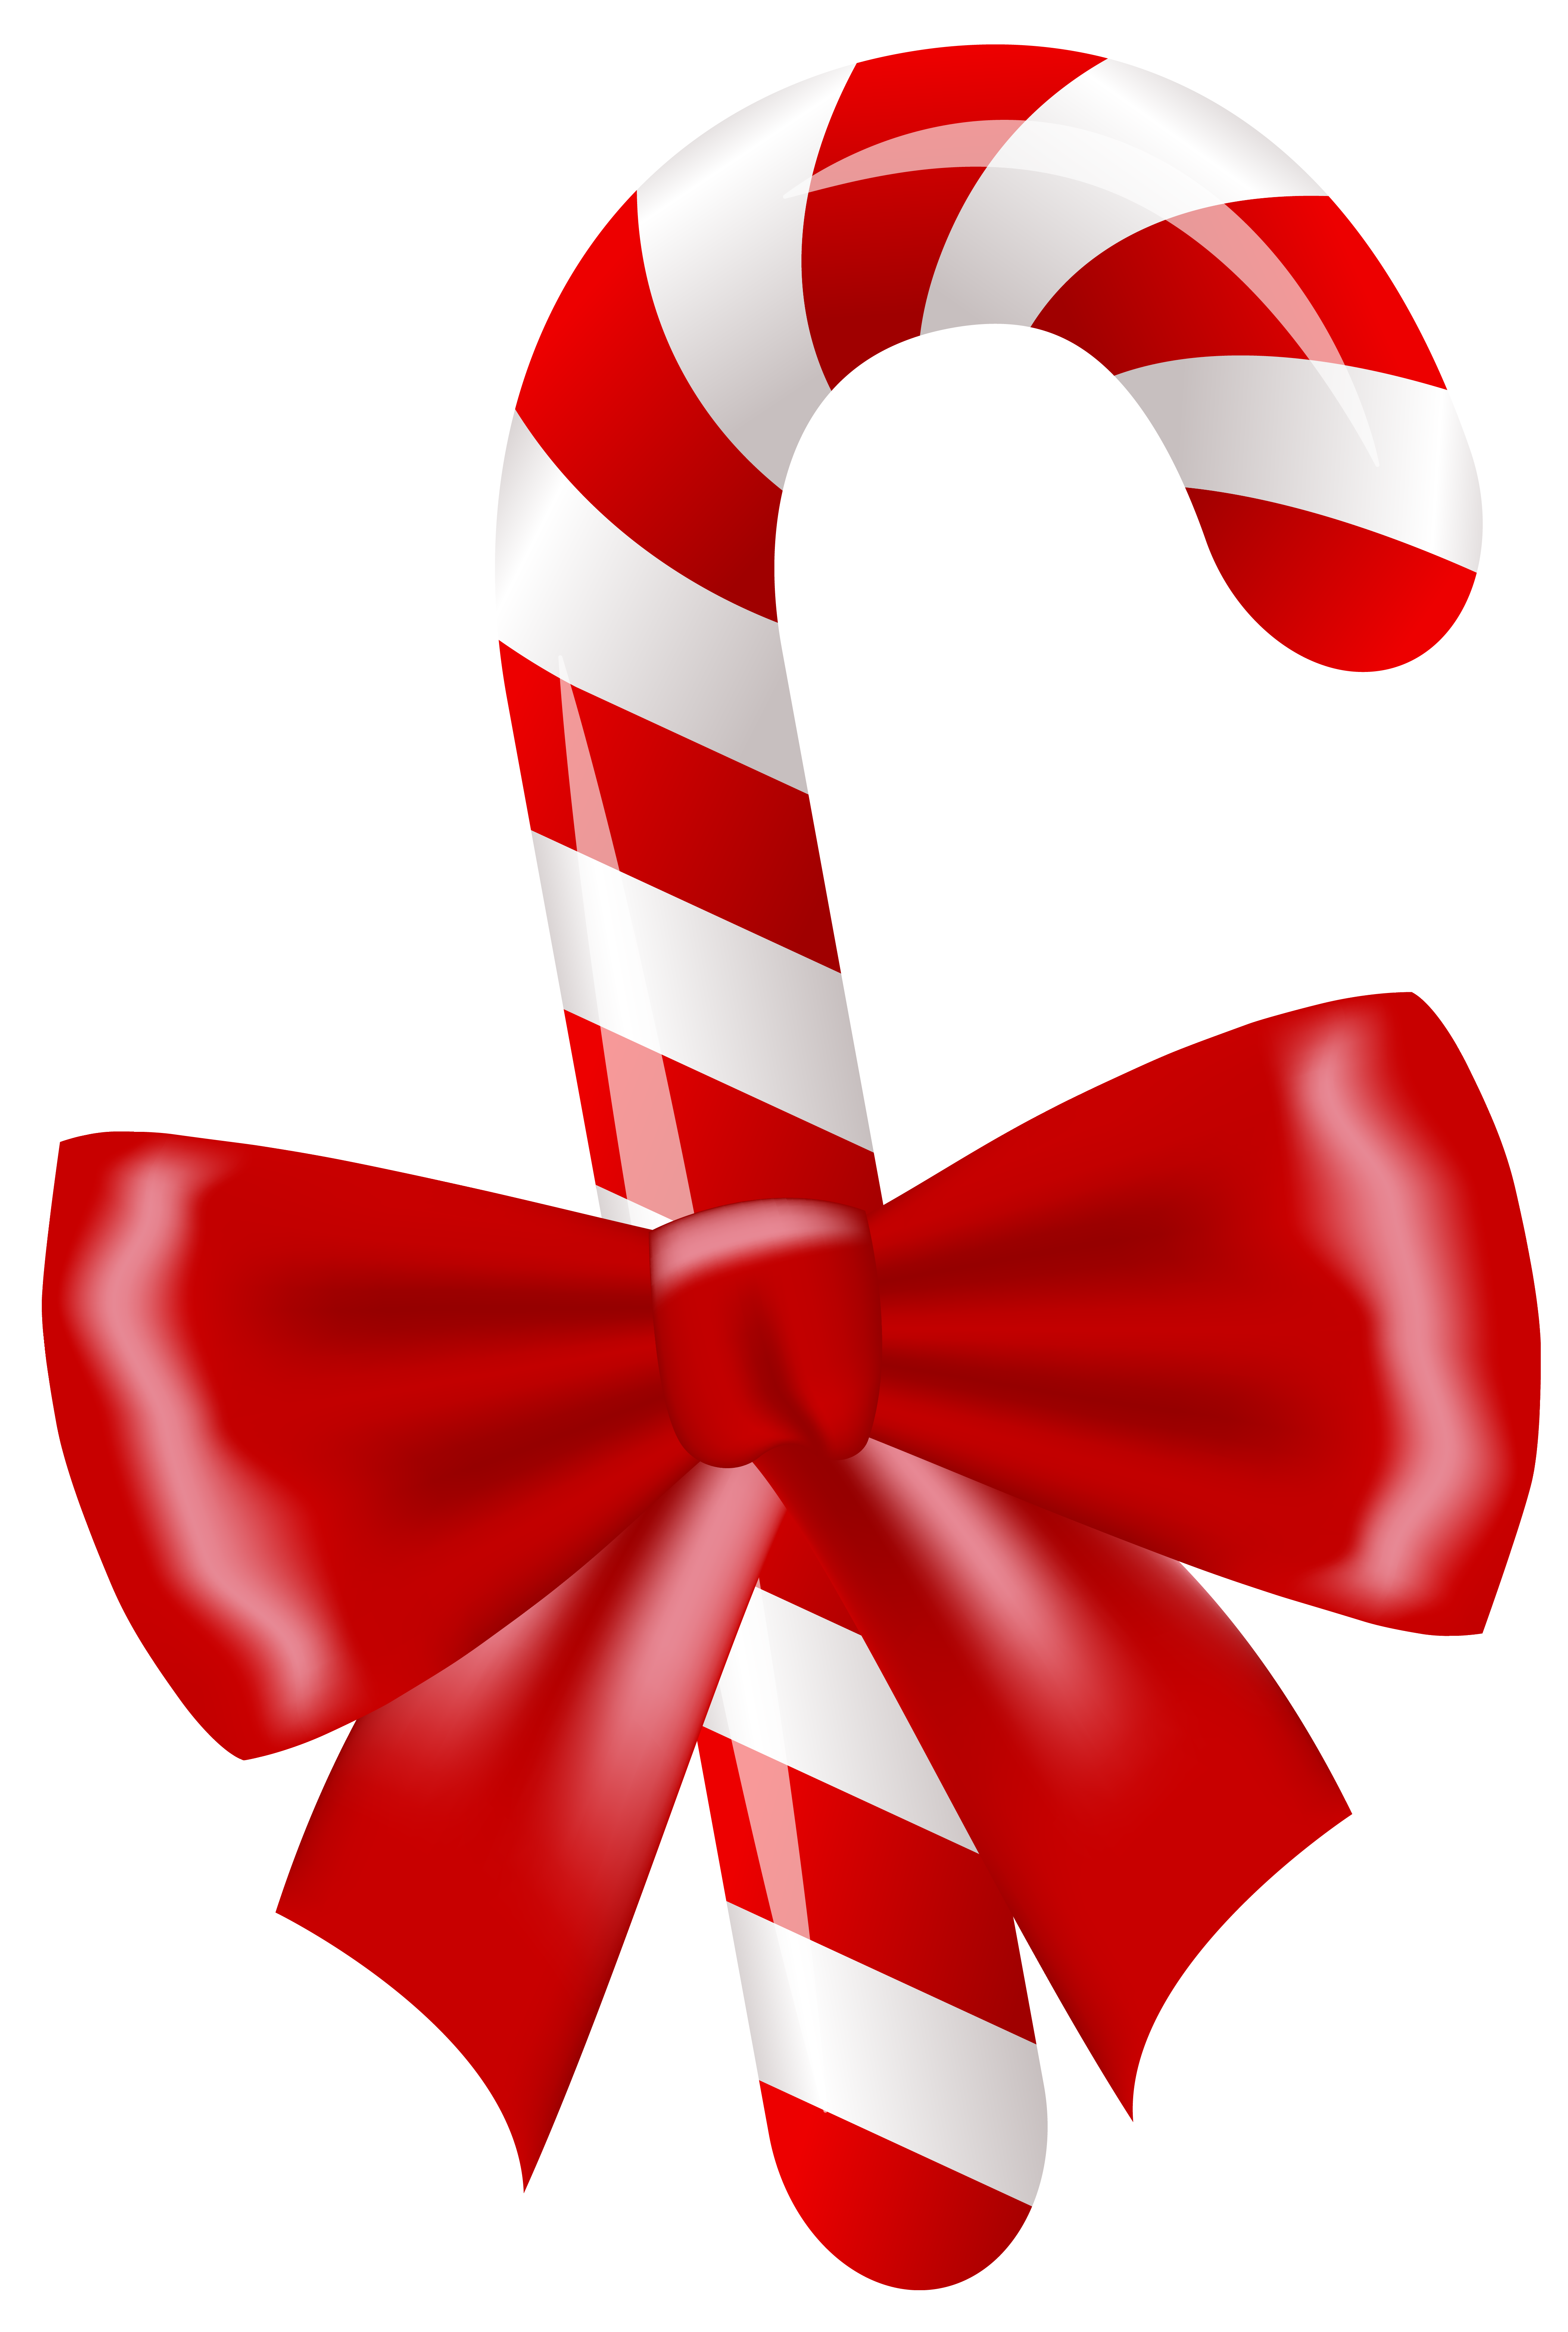 svg black and white stock Candy cane merry christmas. Canes clipart cand.